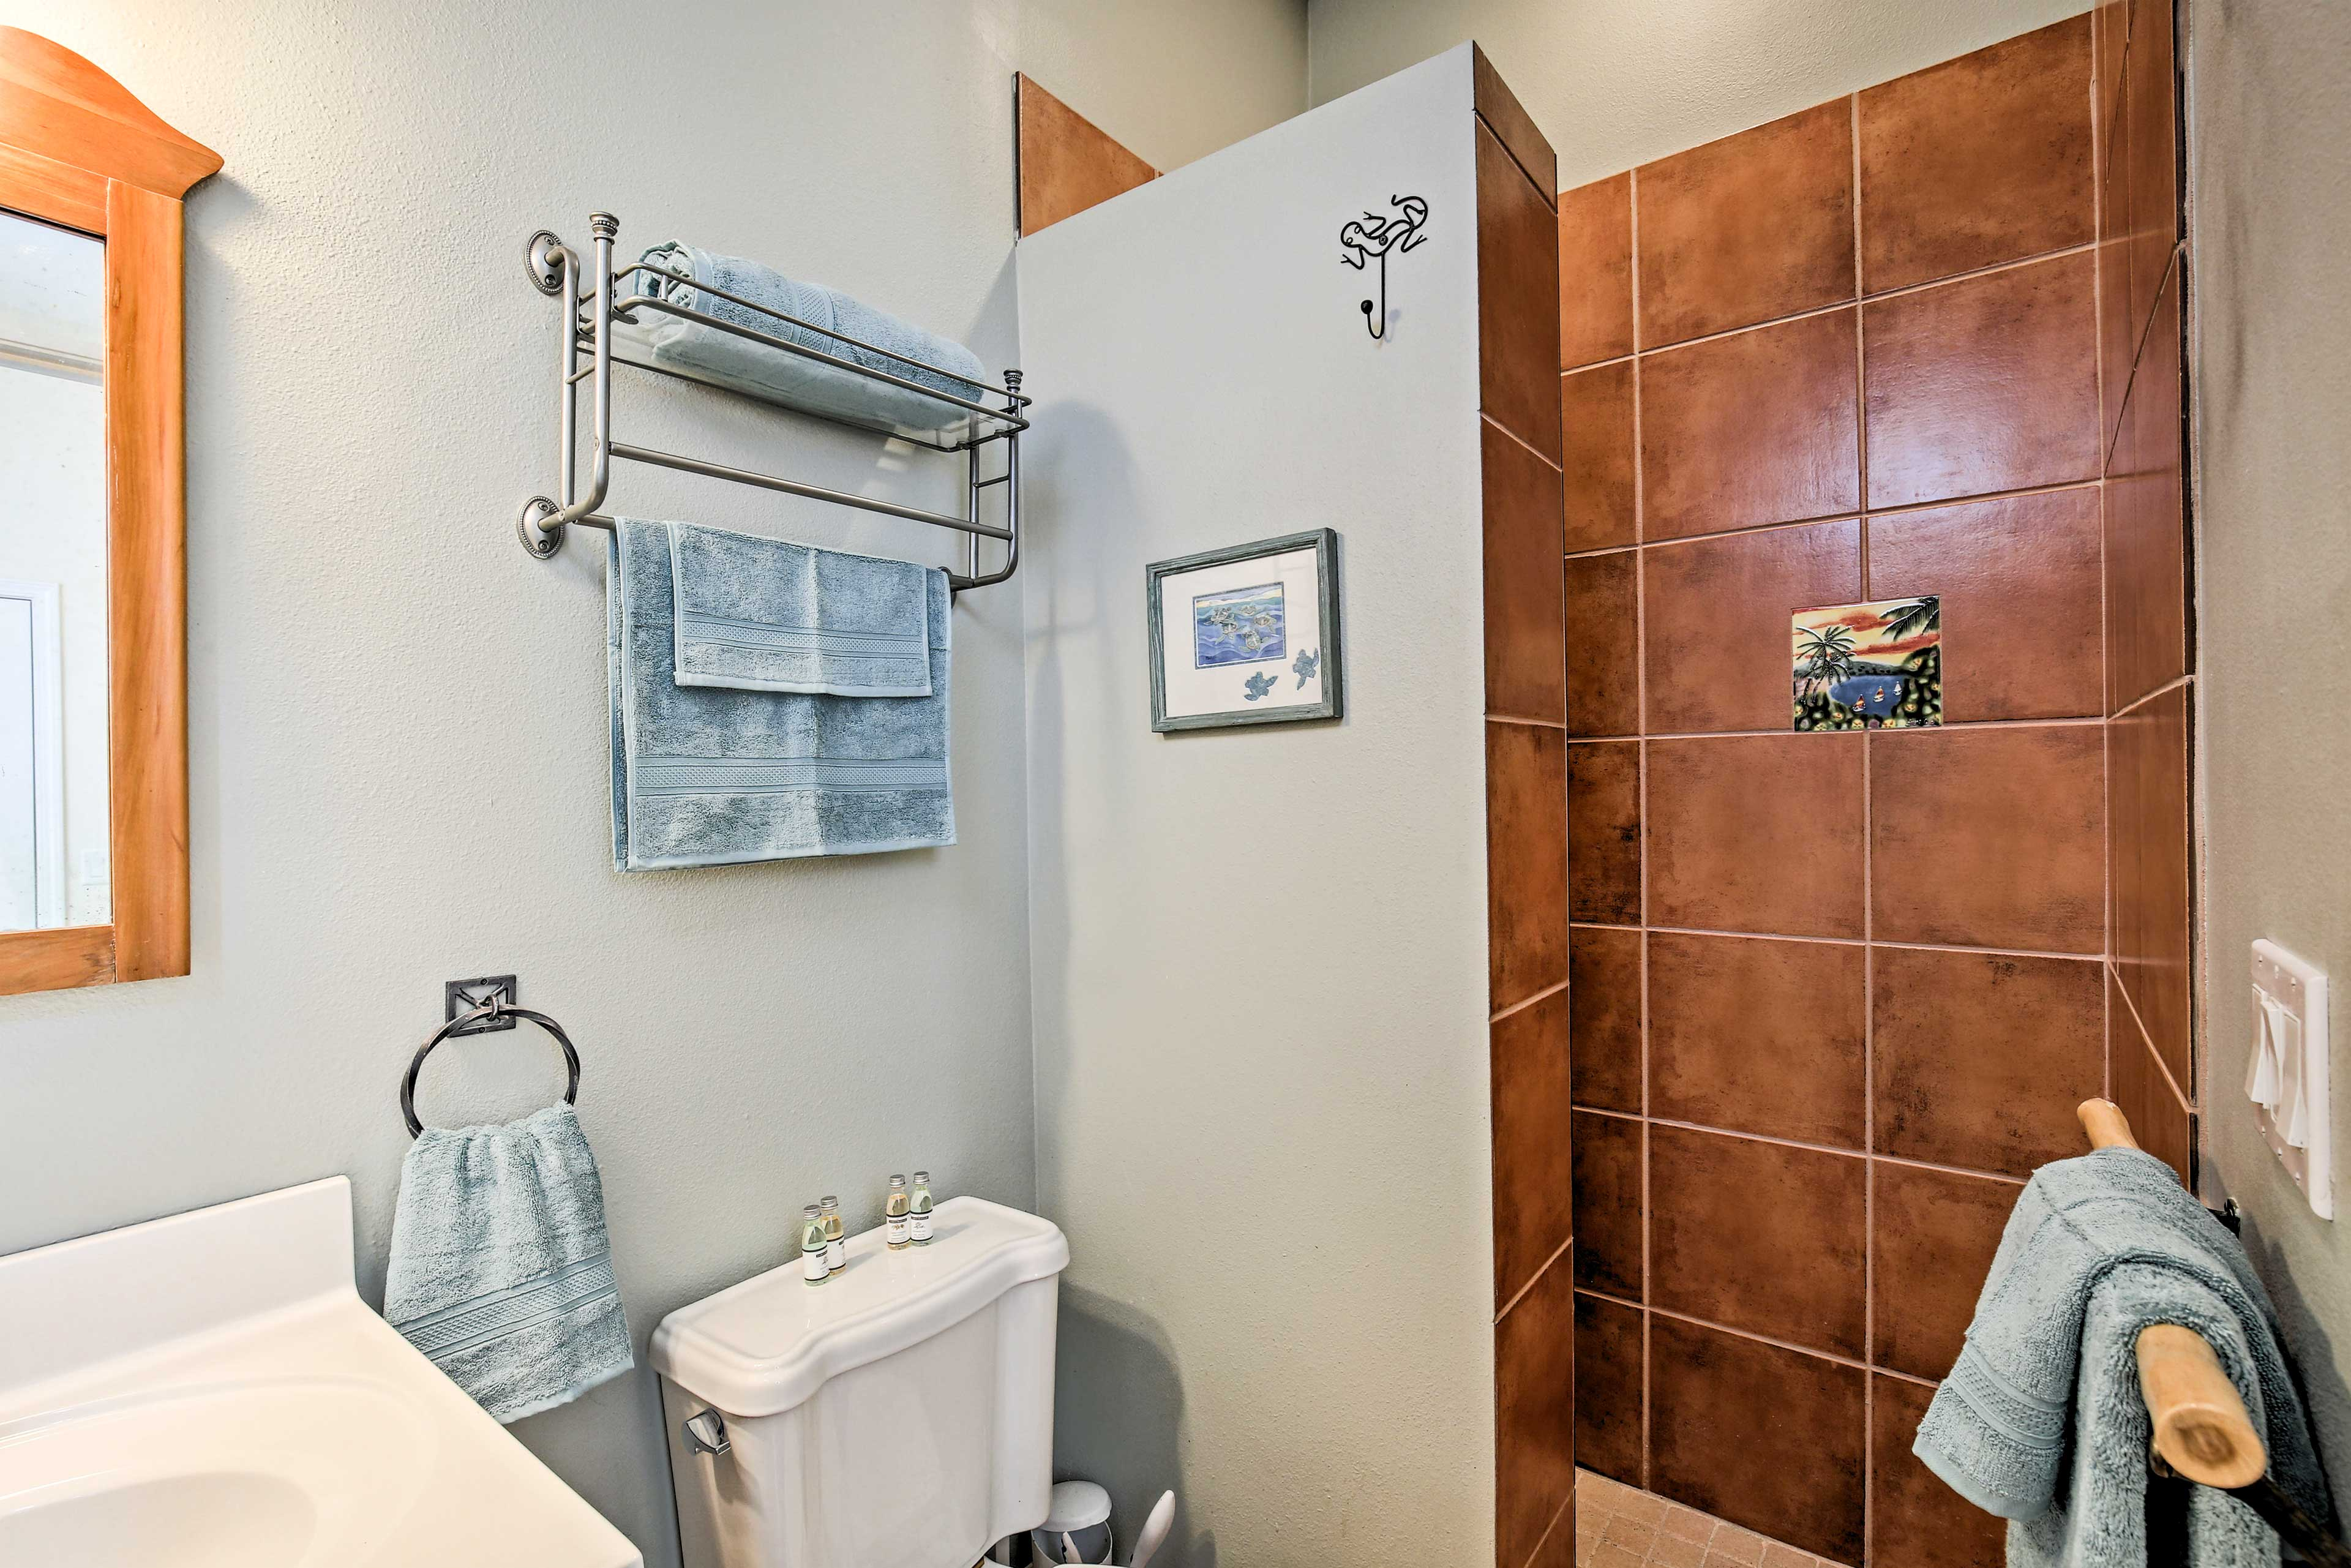 Rinse off the day in this walk-in shower.